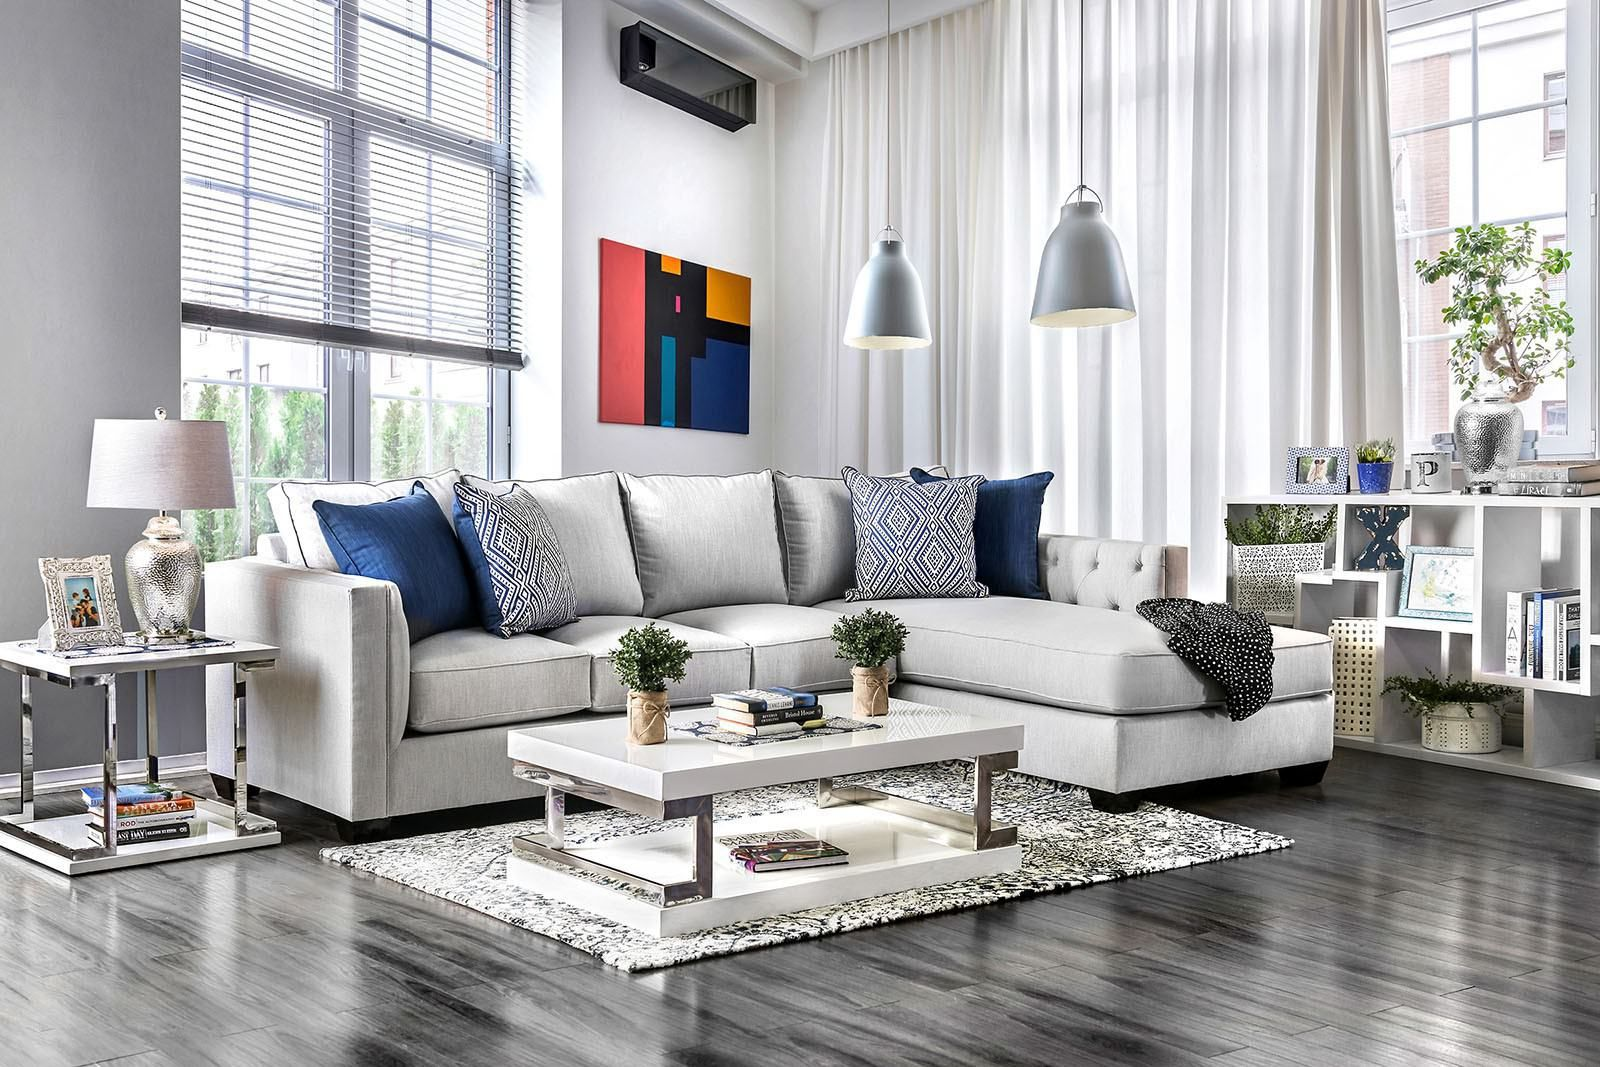 Grey is still very much an 'in' colour, so from furniture to paint, browse these grey living room ideas for inspiration. The Ornella Light Gray Upholstered Sectional by Furniture ...